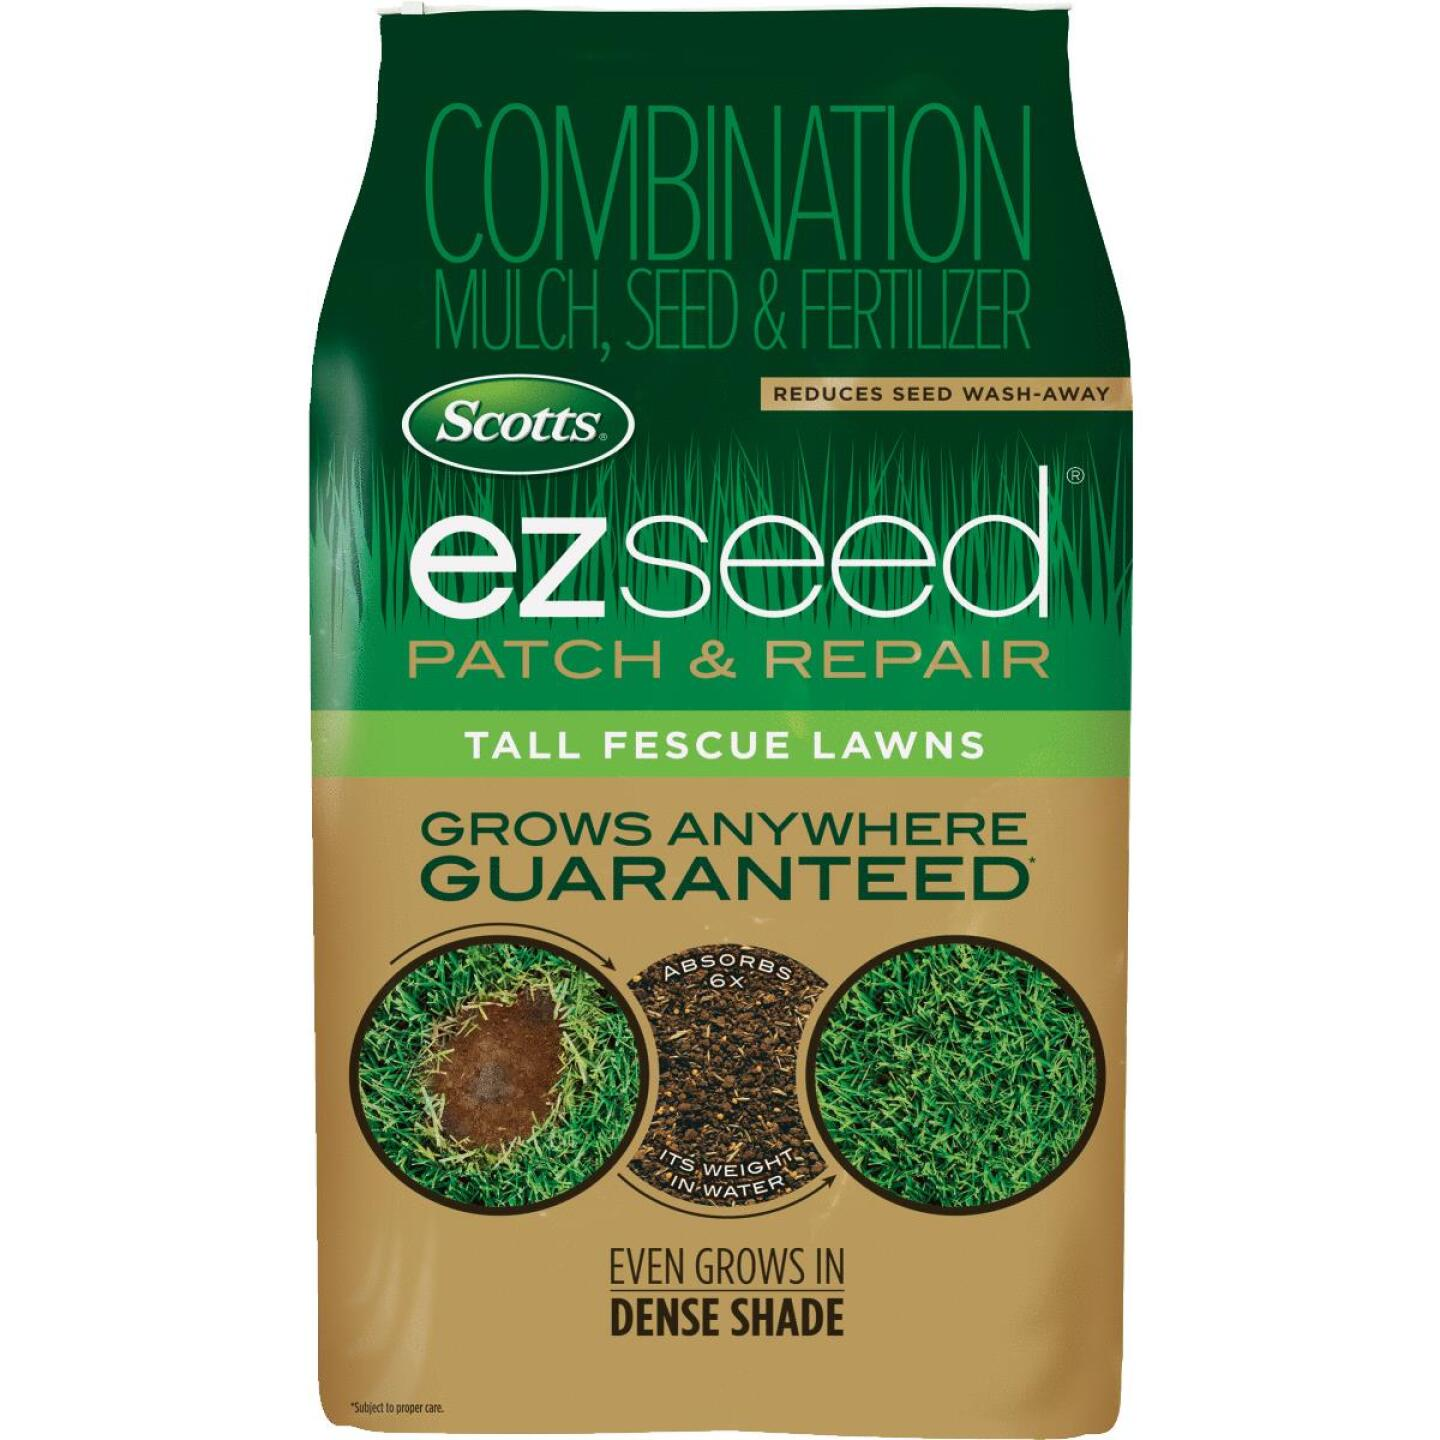 Scotts eZ Seed 20 Lb. 445 Sq. Ft. Coverage Tall Fescue Grass Patch & Repair Image 1